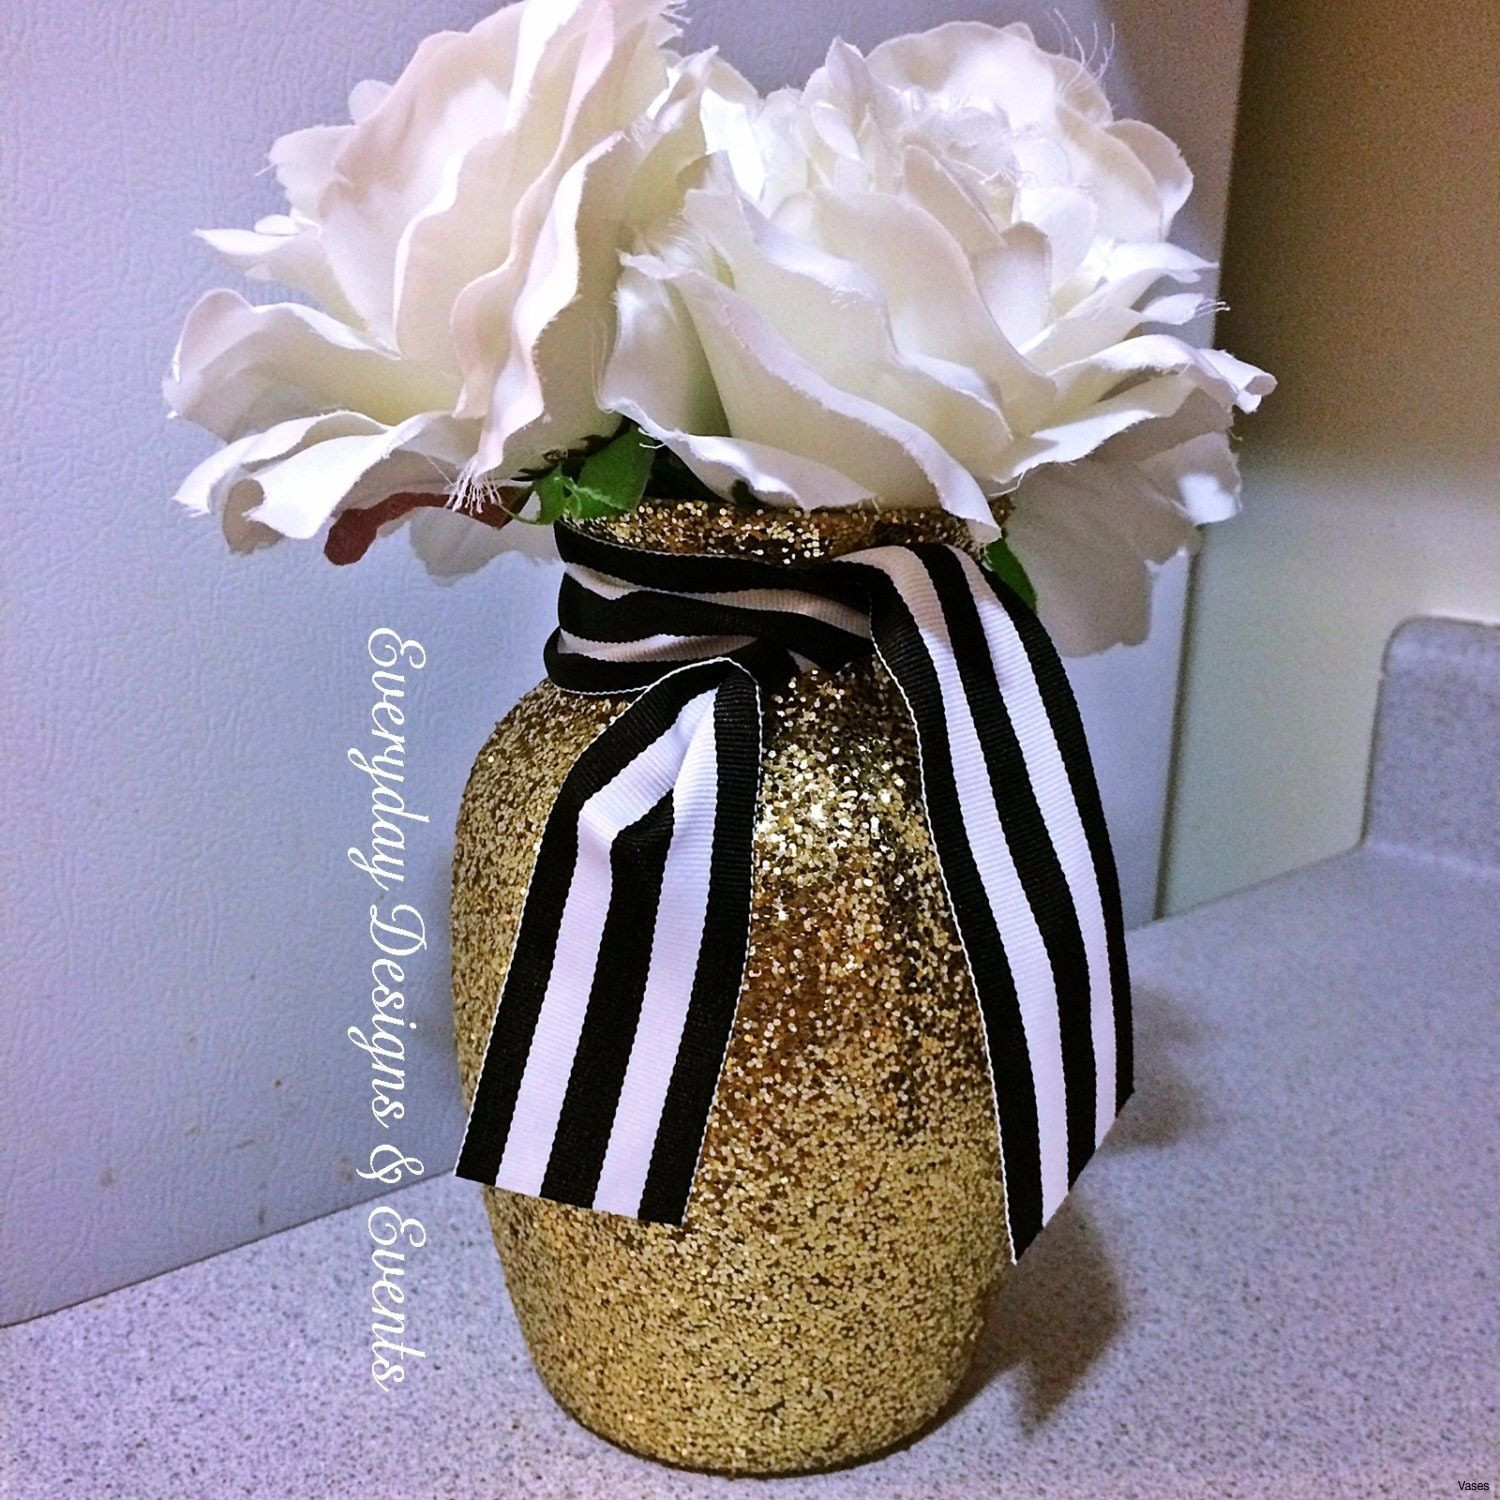 29 Best Red Roses In Gold Vase 2021 free download red roses in gold vase of white and gold vase awesome luxury flower picture in black and white for white and gold vase awesome luxury flower picture in black and white